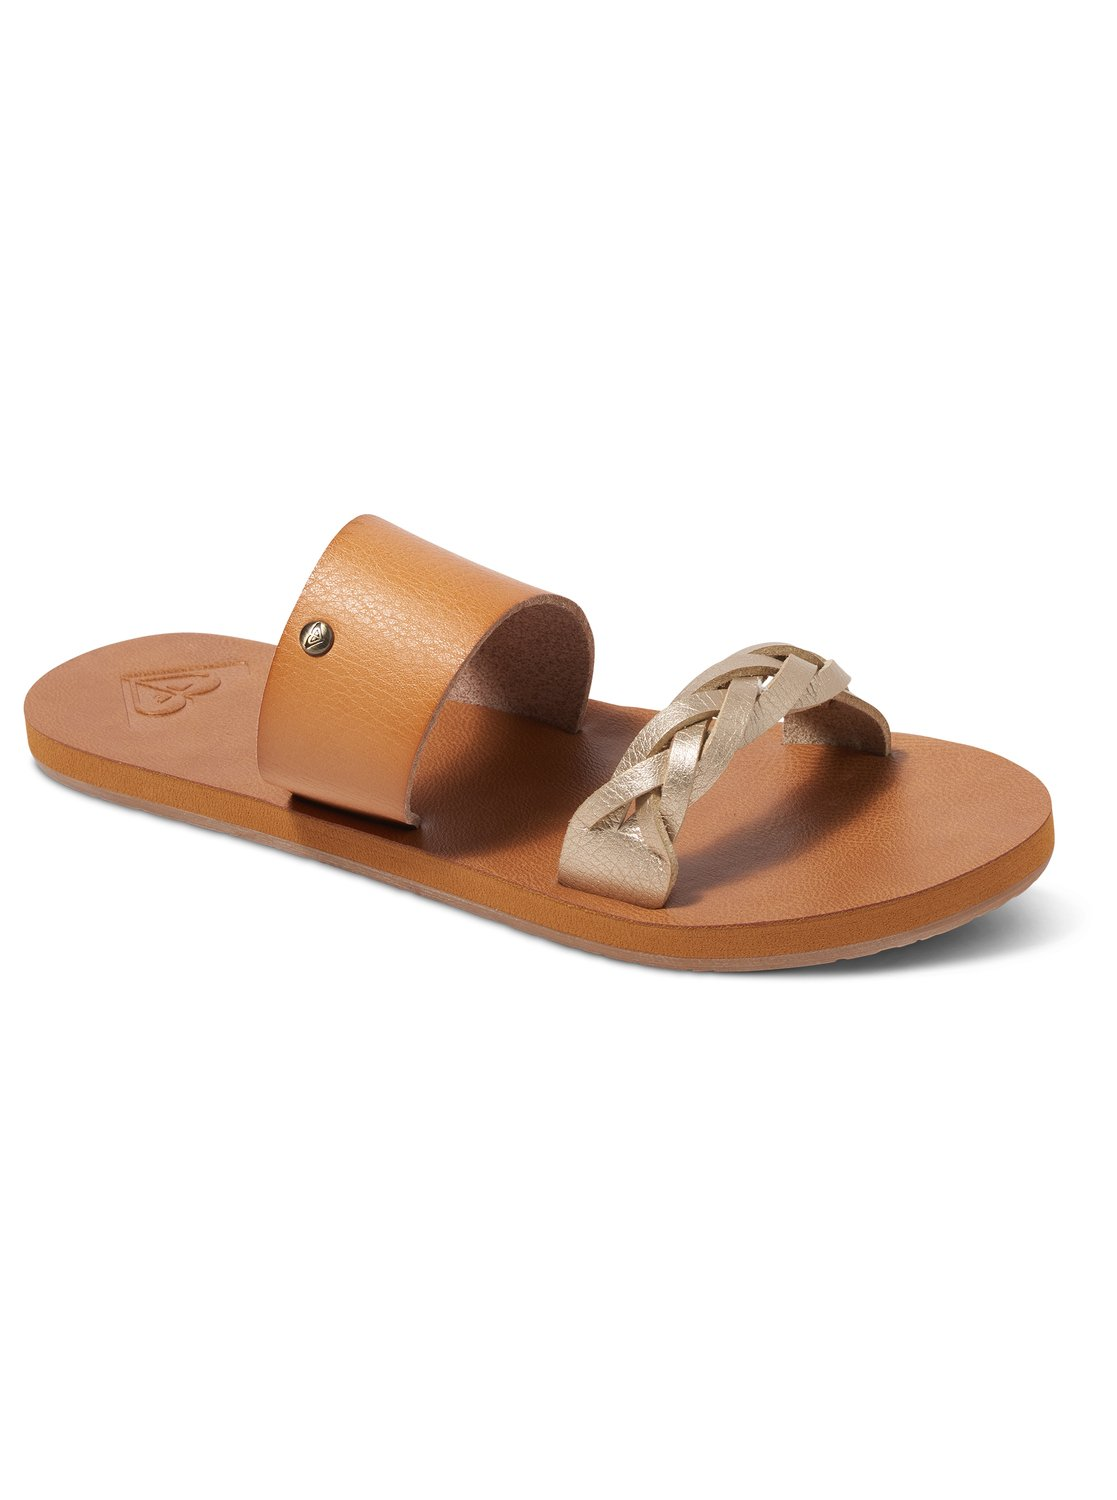 New Roxy Tess Flip Flops for Women Sale Online